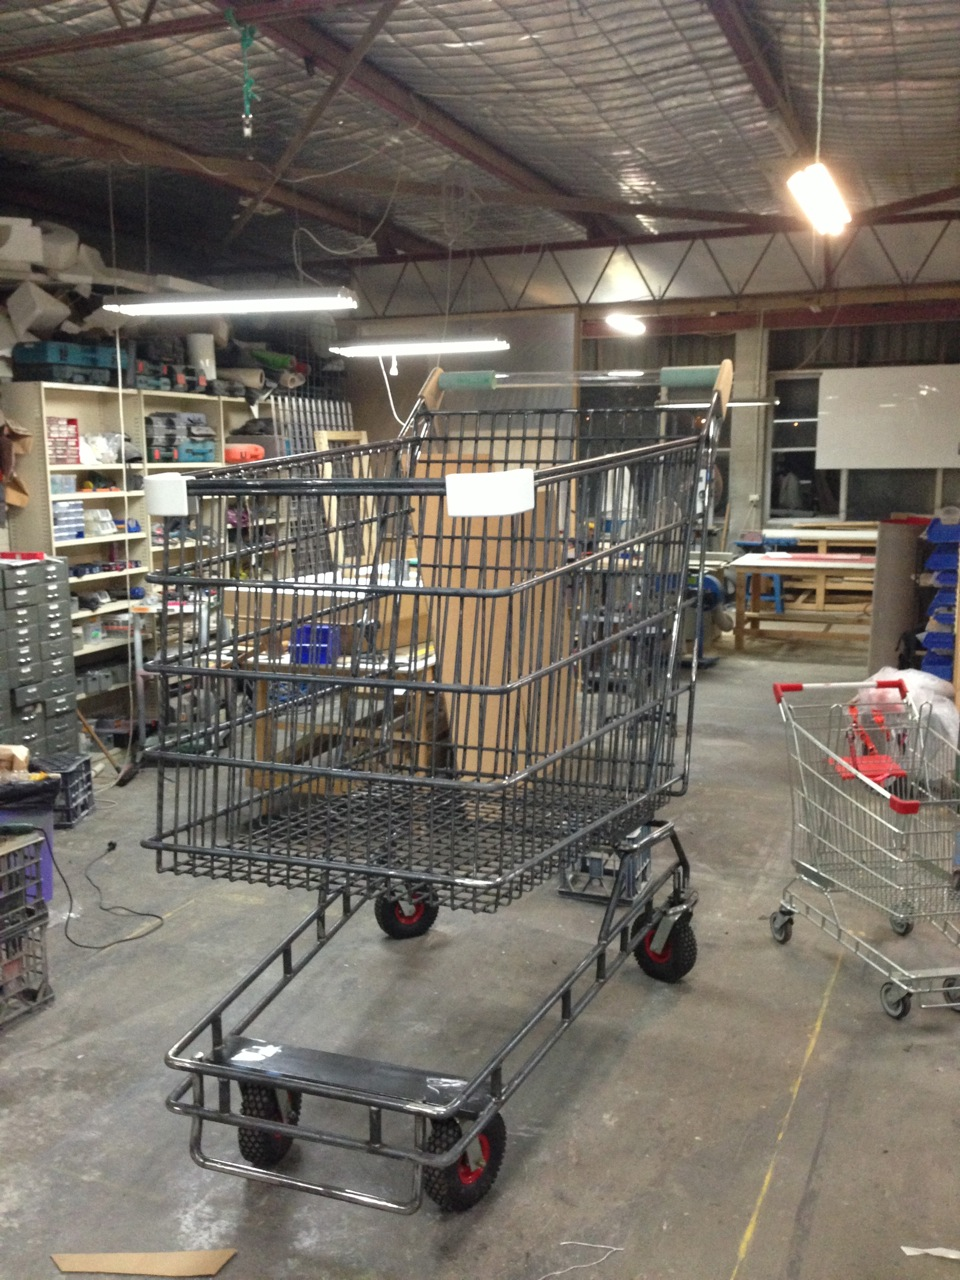 Shopping trolley under construction at Yippee Ki-Yay workshop